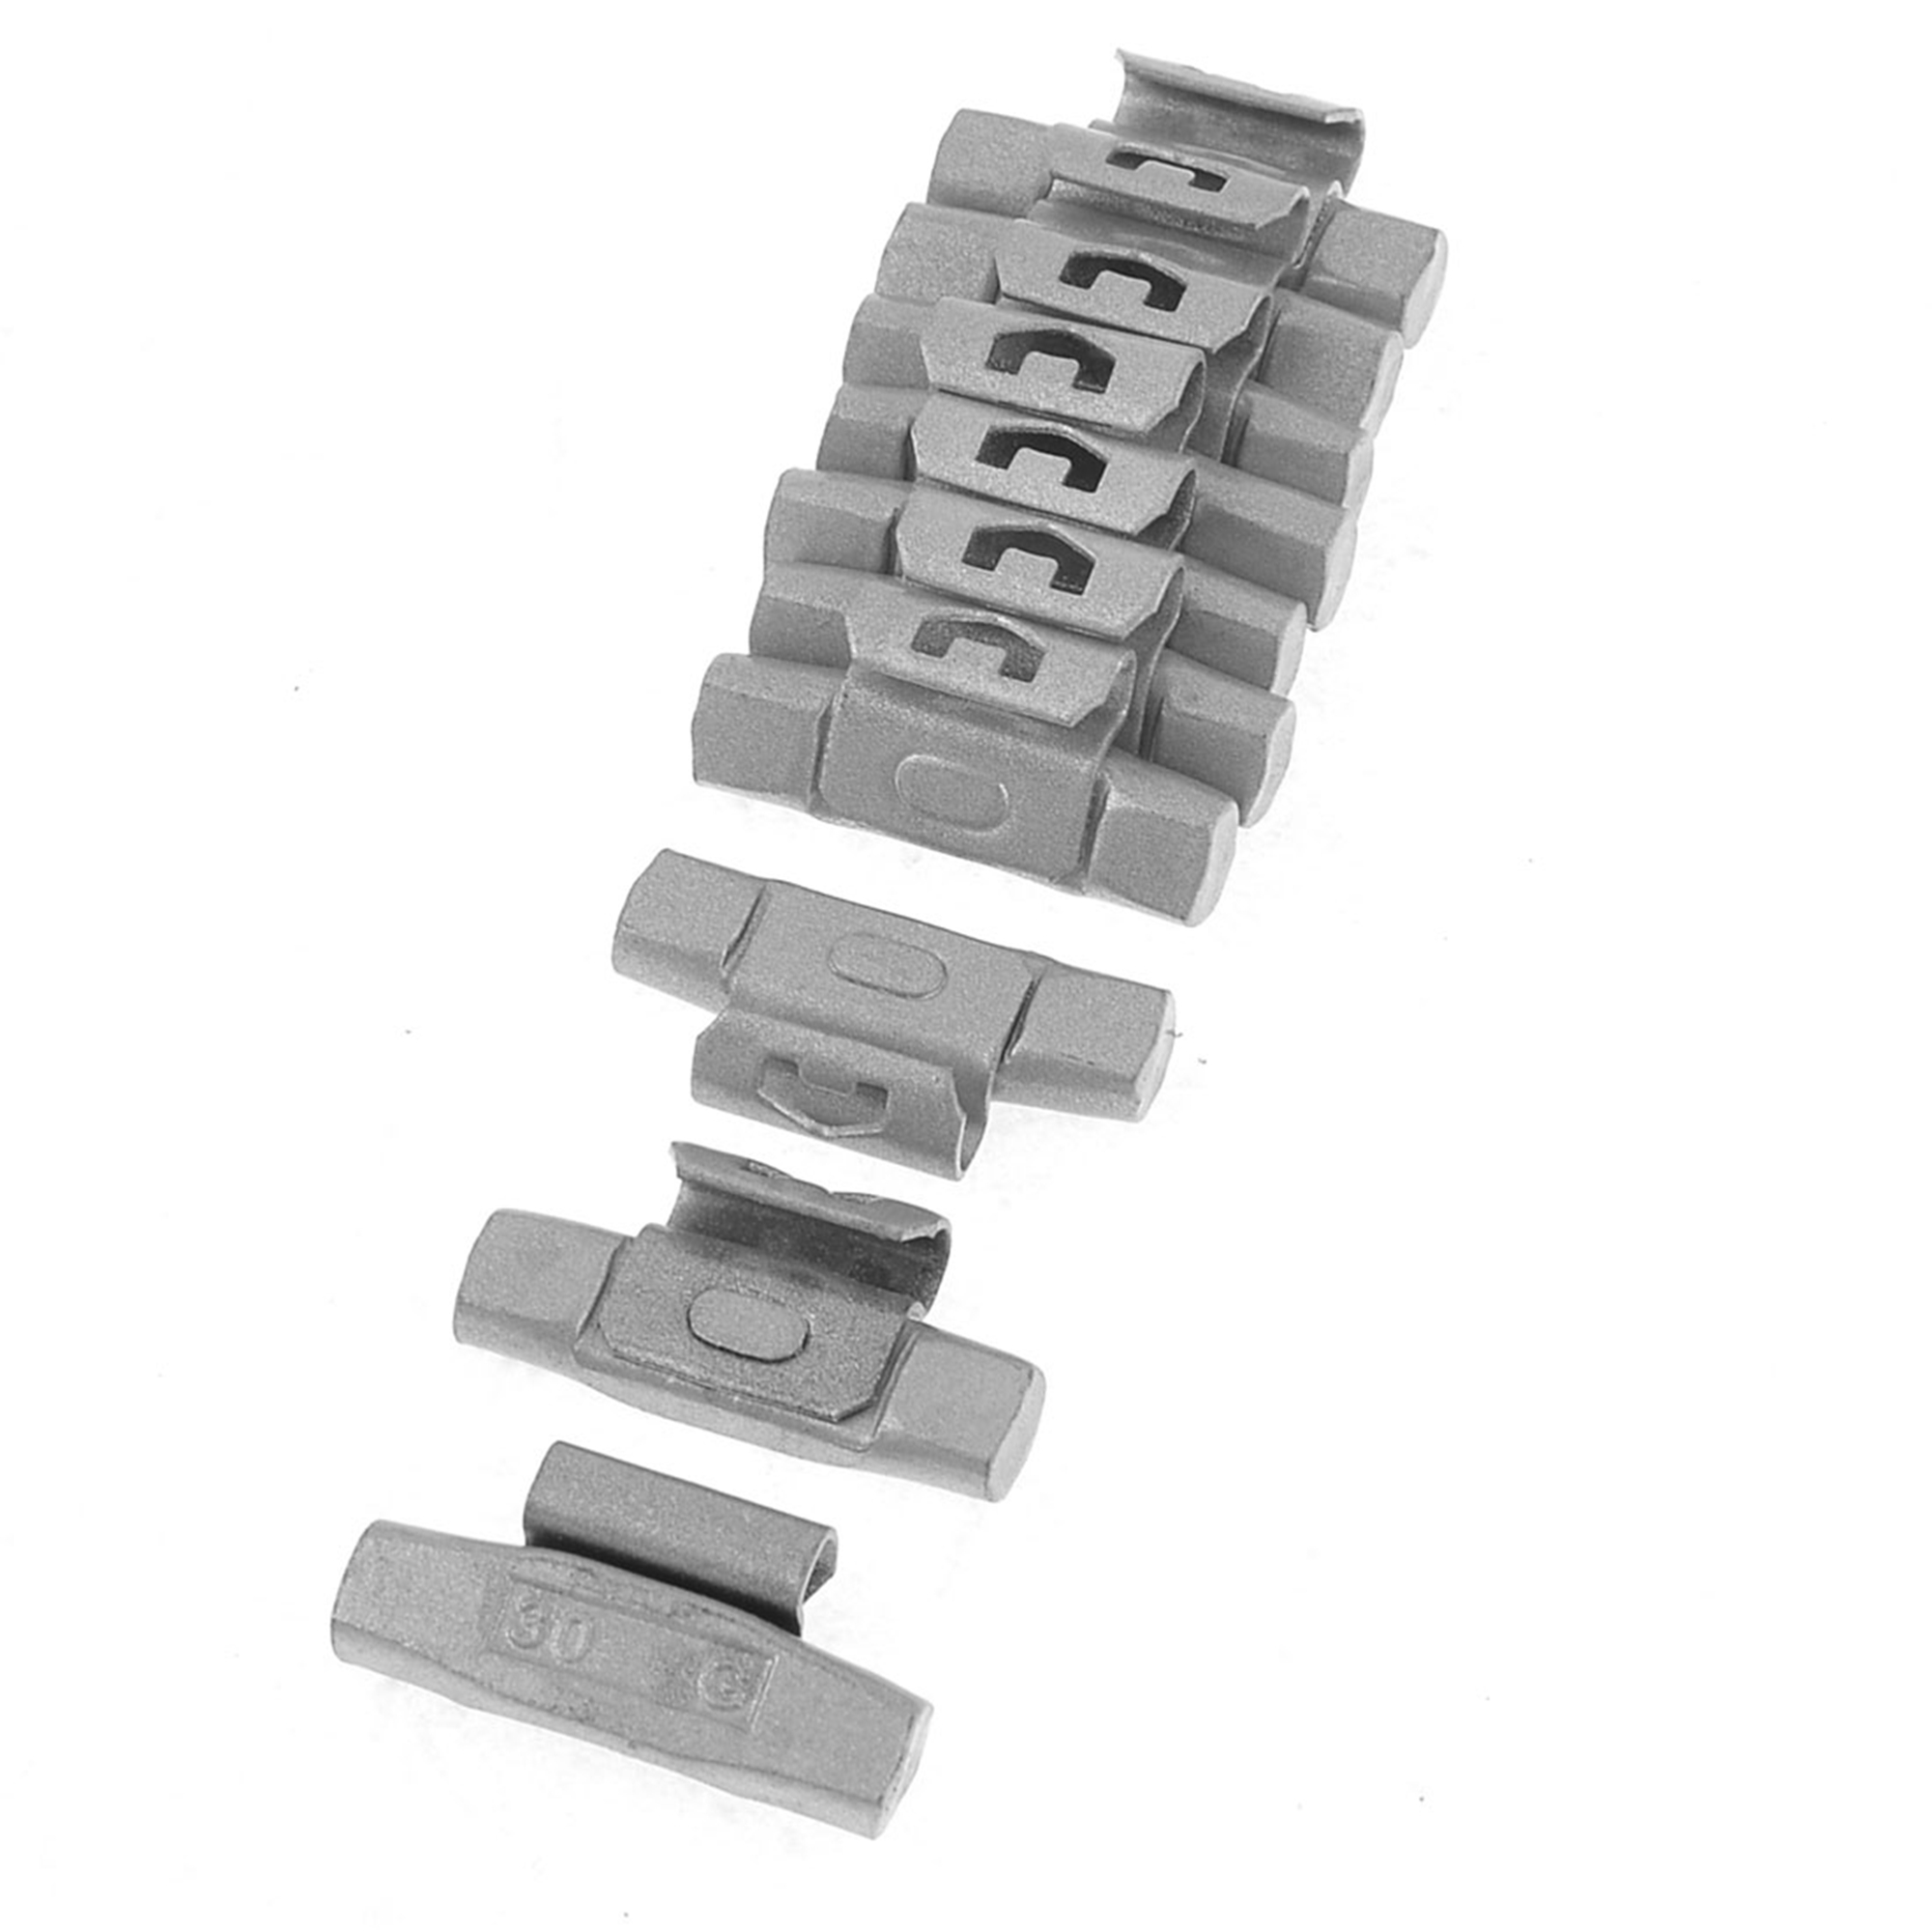 43 x 20 x 10mm Car Tyre Tire Wheel Balance Weights 30g 10pcs